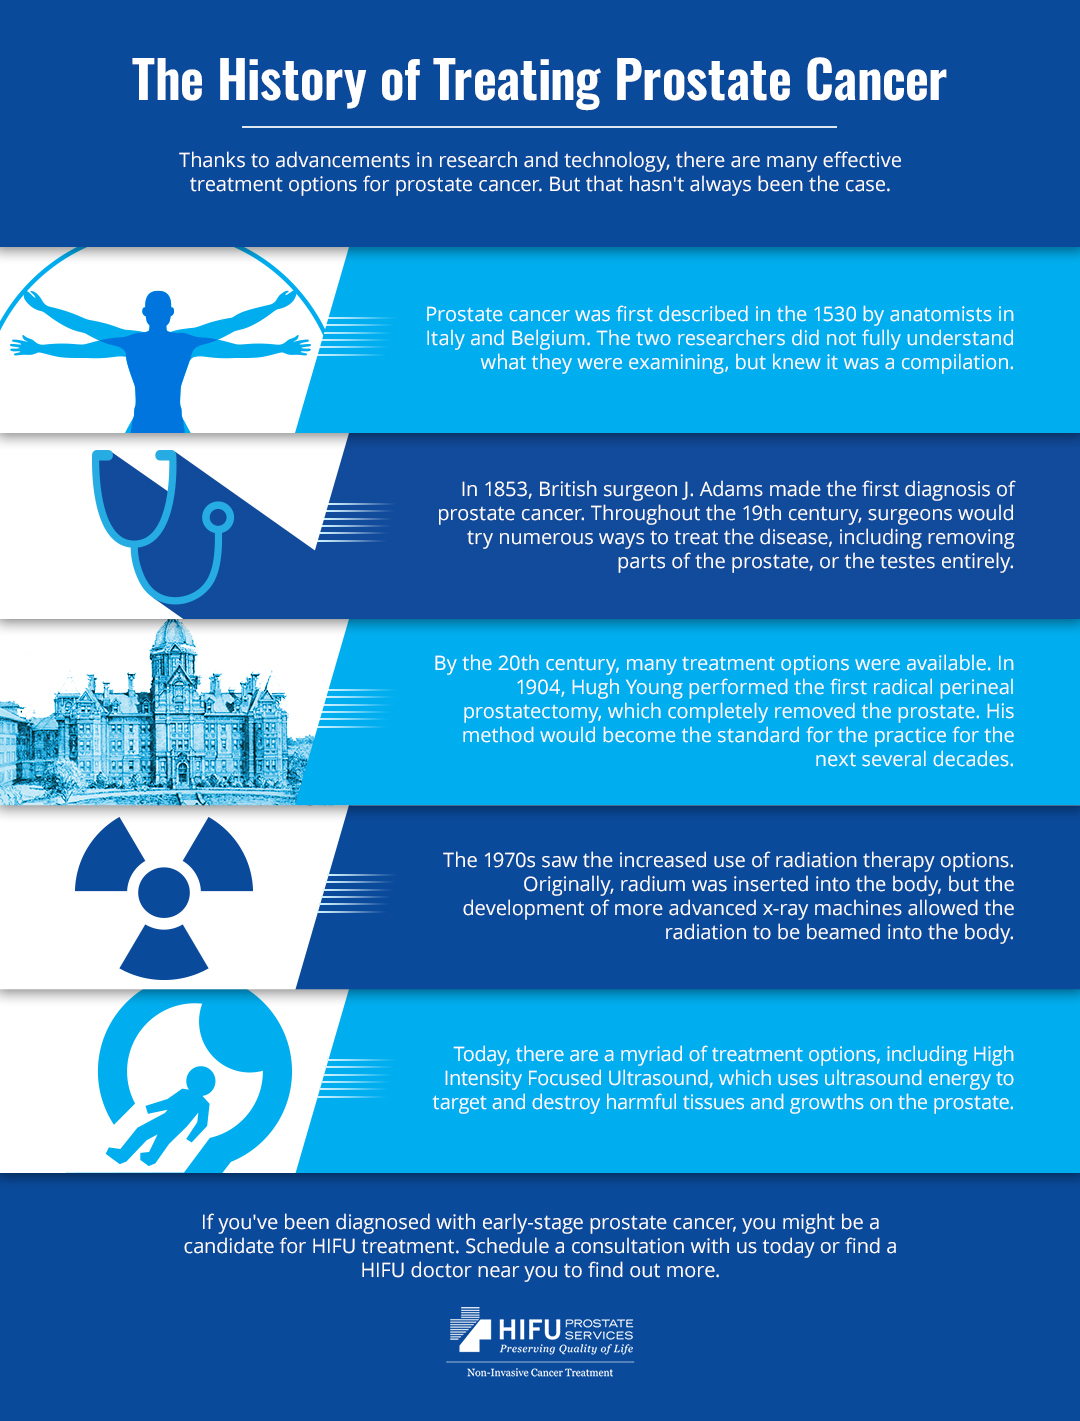 The History of Treating Prostate Cancer infographic